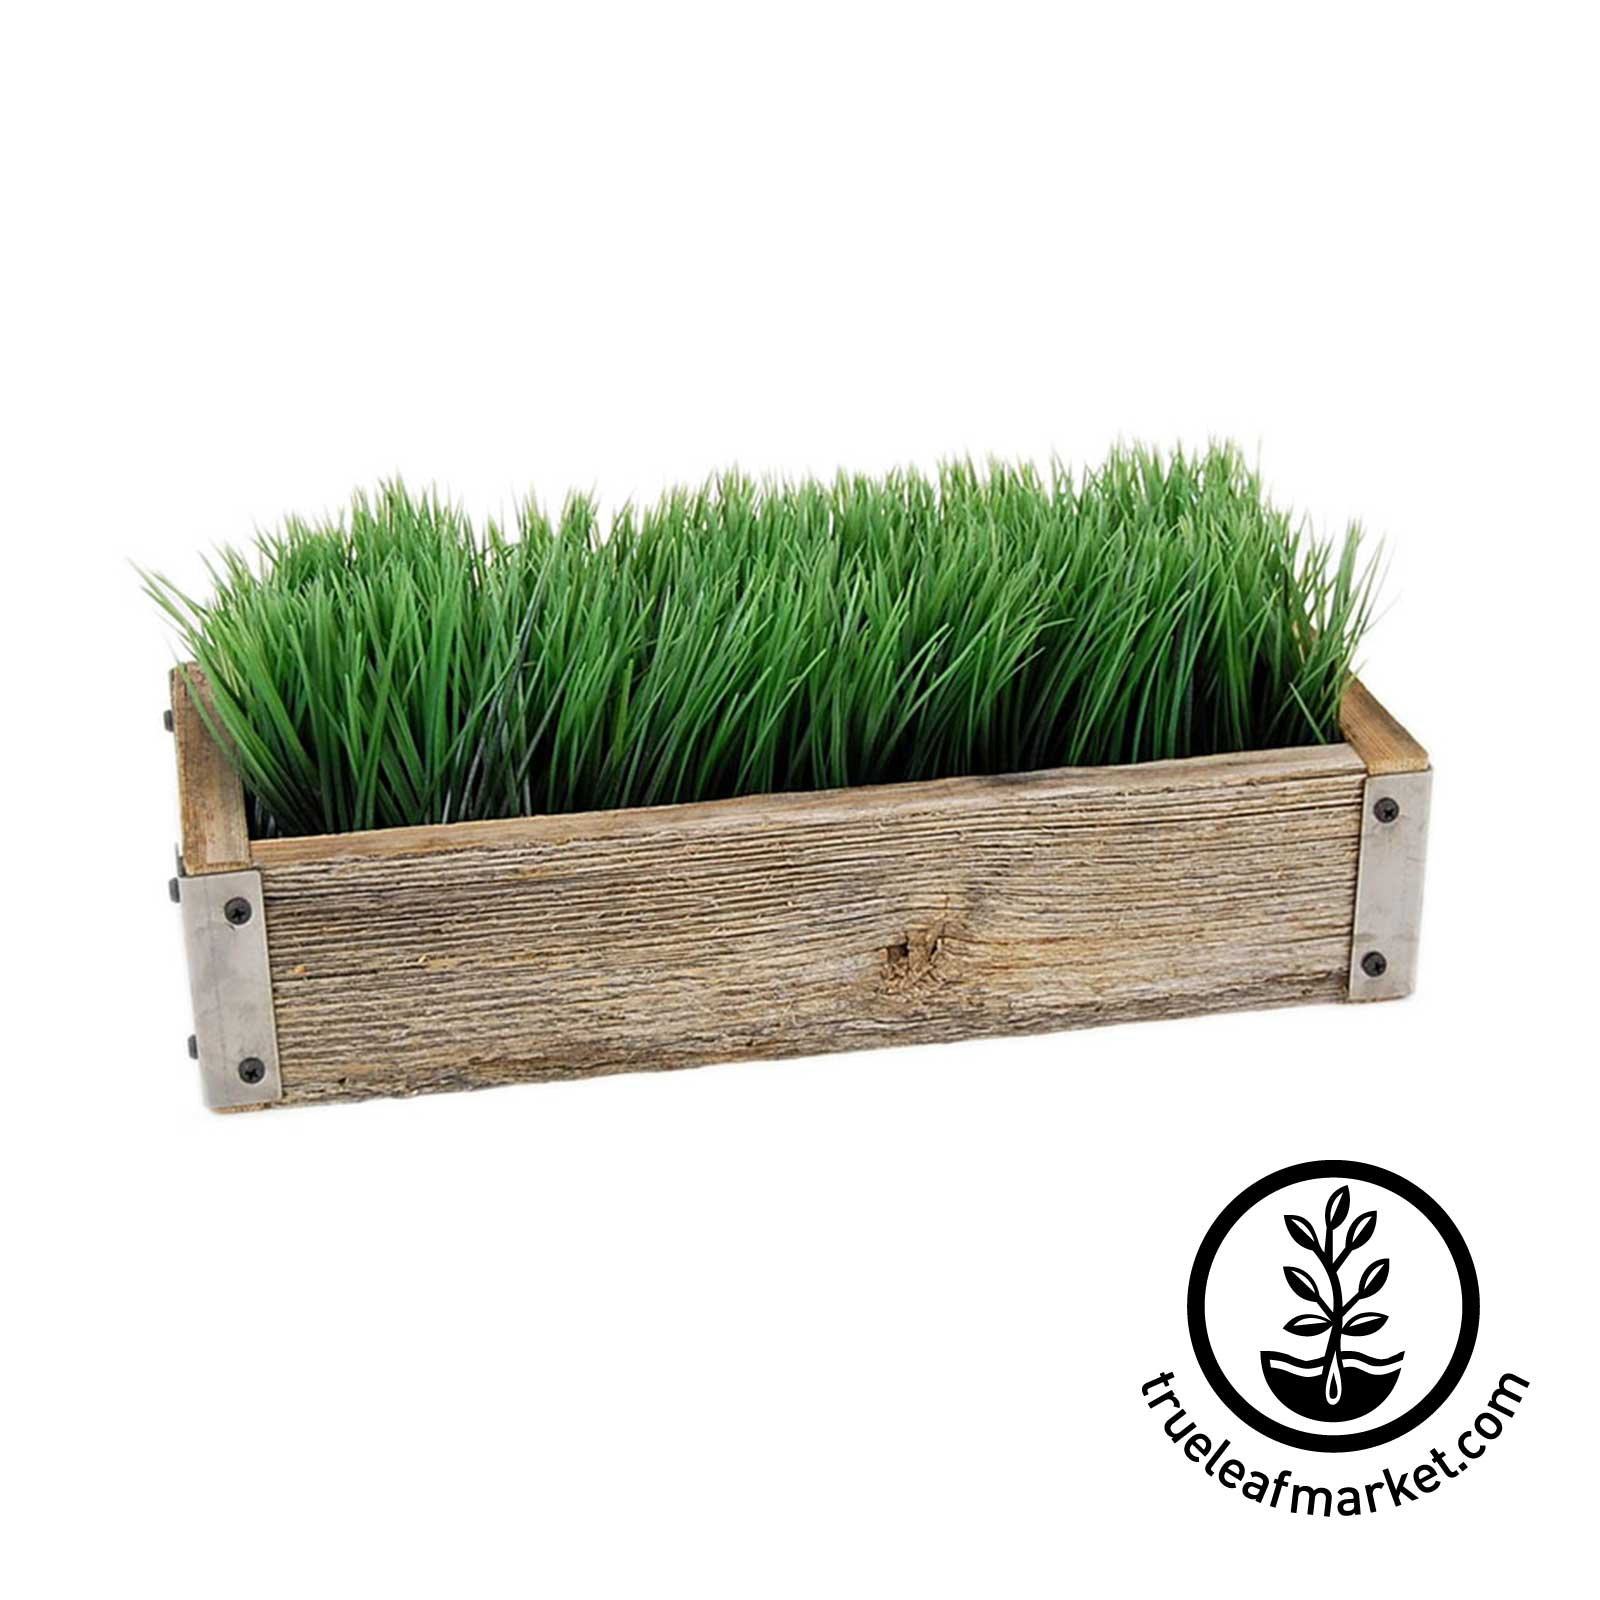 Barnwood Planter with Artificial Wheatgrass Reclaimed barn wood, rustic barnwood, ornamental grass, wheatgrass